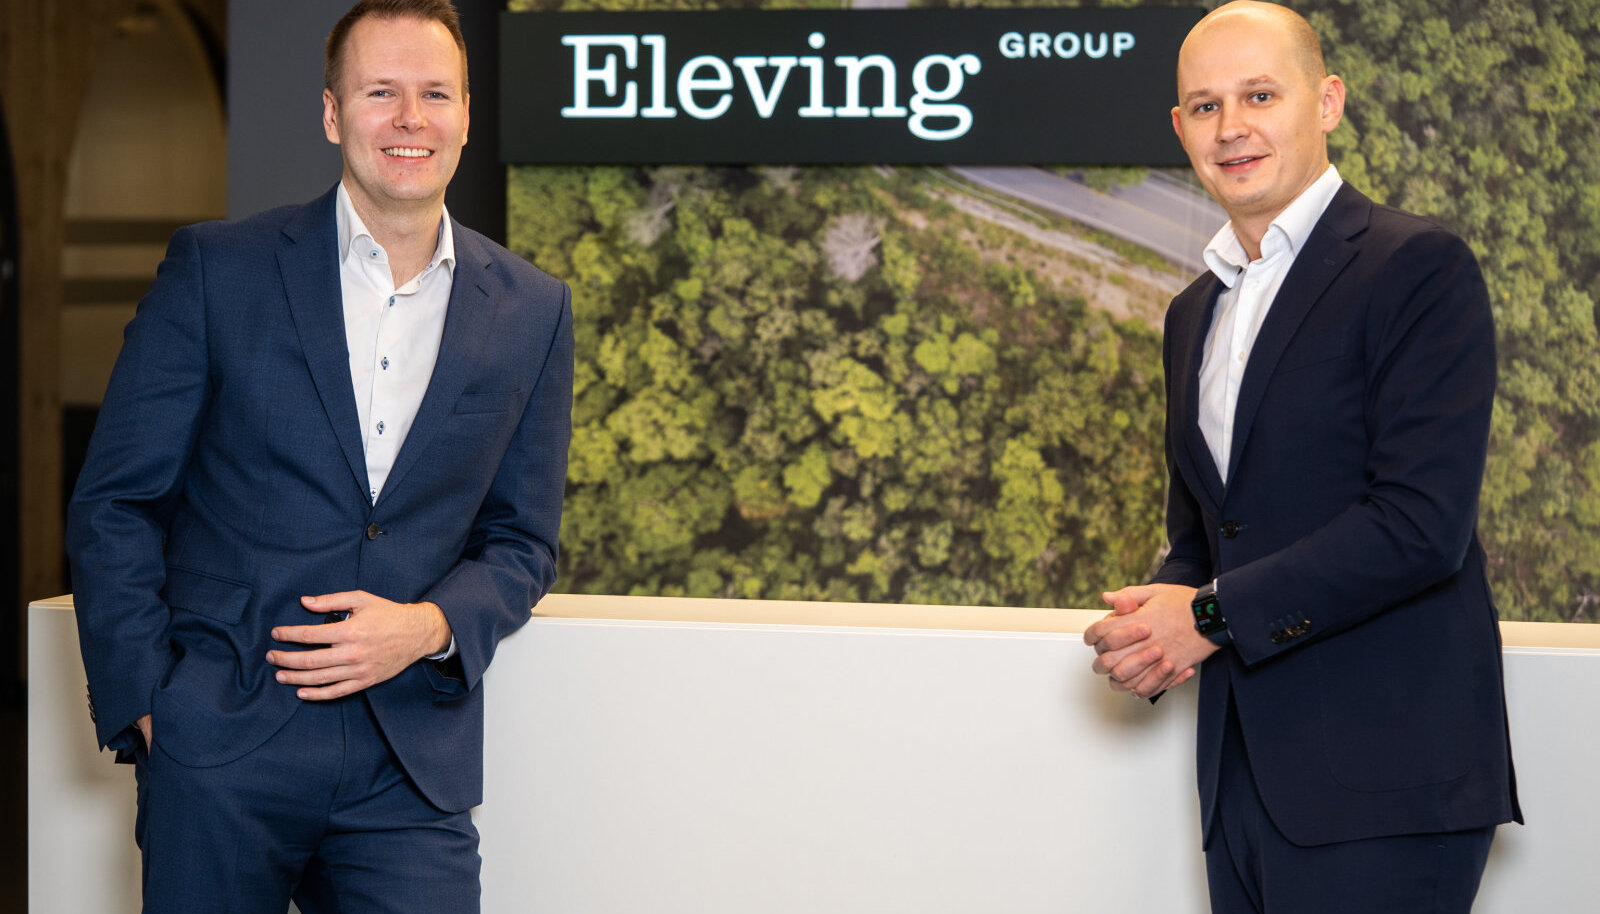 Eleving Group